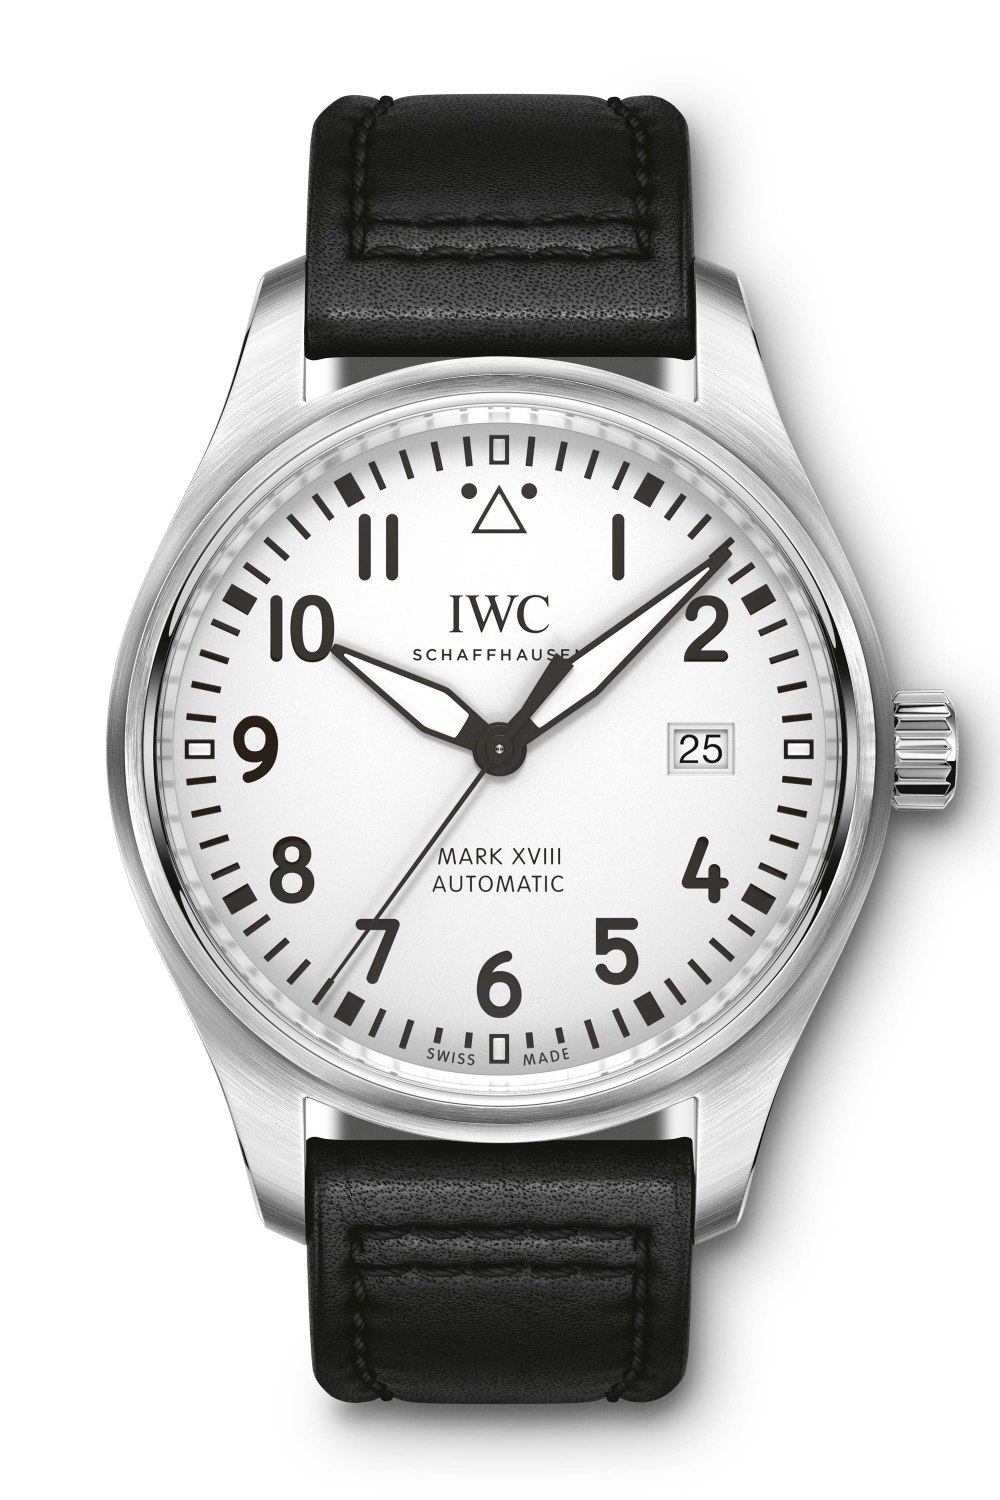 IWC SCHAFFHAUSEN Pilot's Watch Mark XVIII IW327012